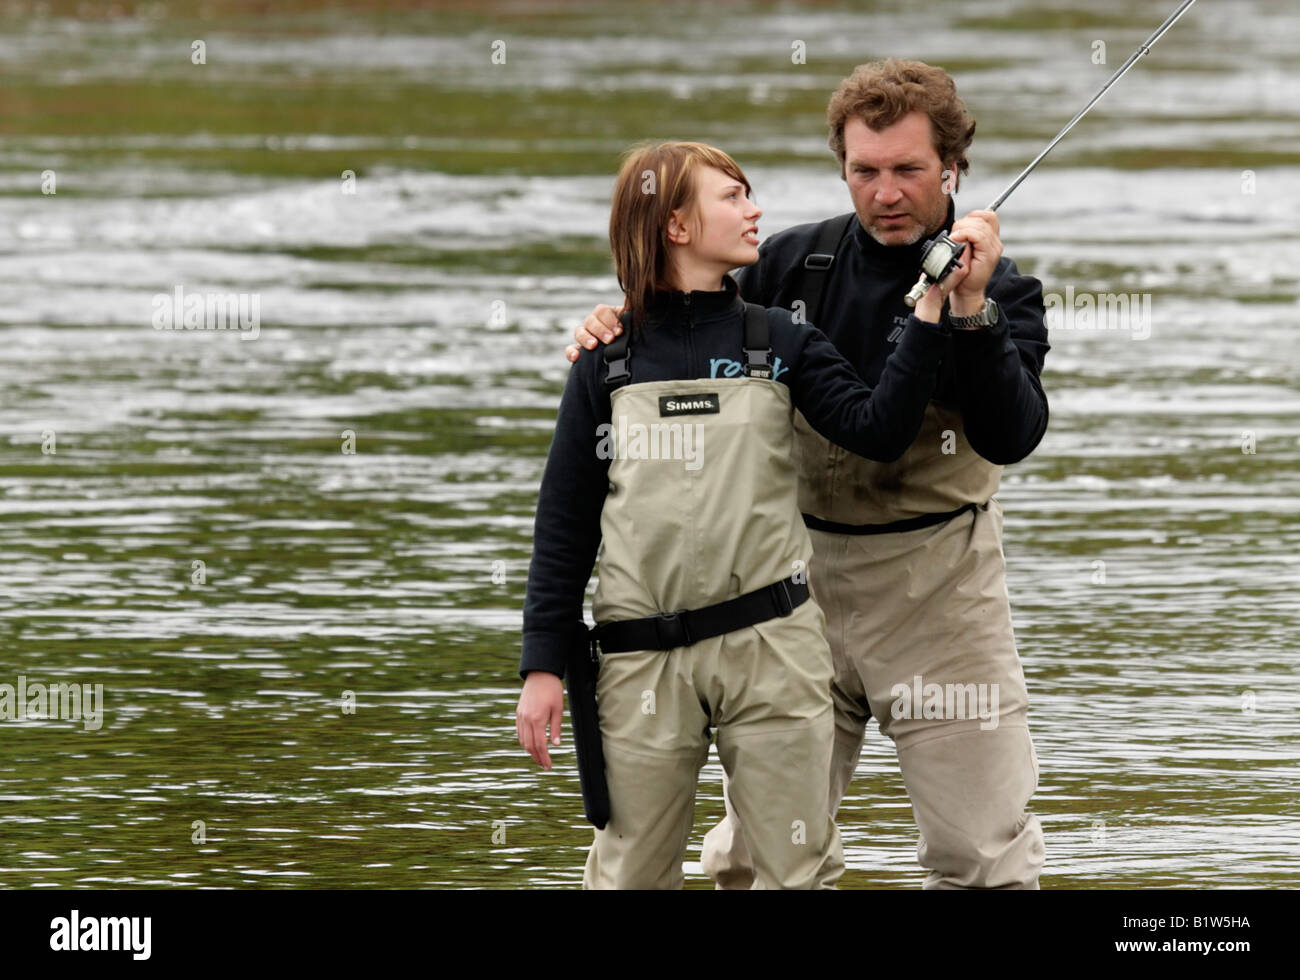 First Murmansk Open Fly Fishing Cup at 28 29th June 2008 year Songui Kola  River Kola e39d5d496ce9